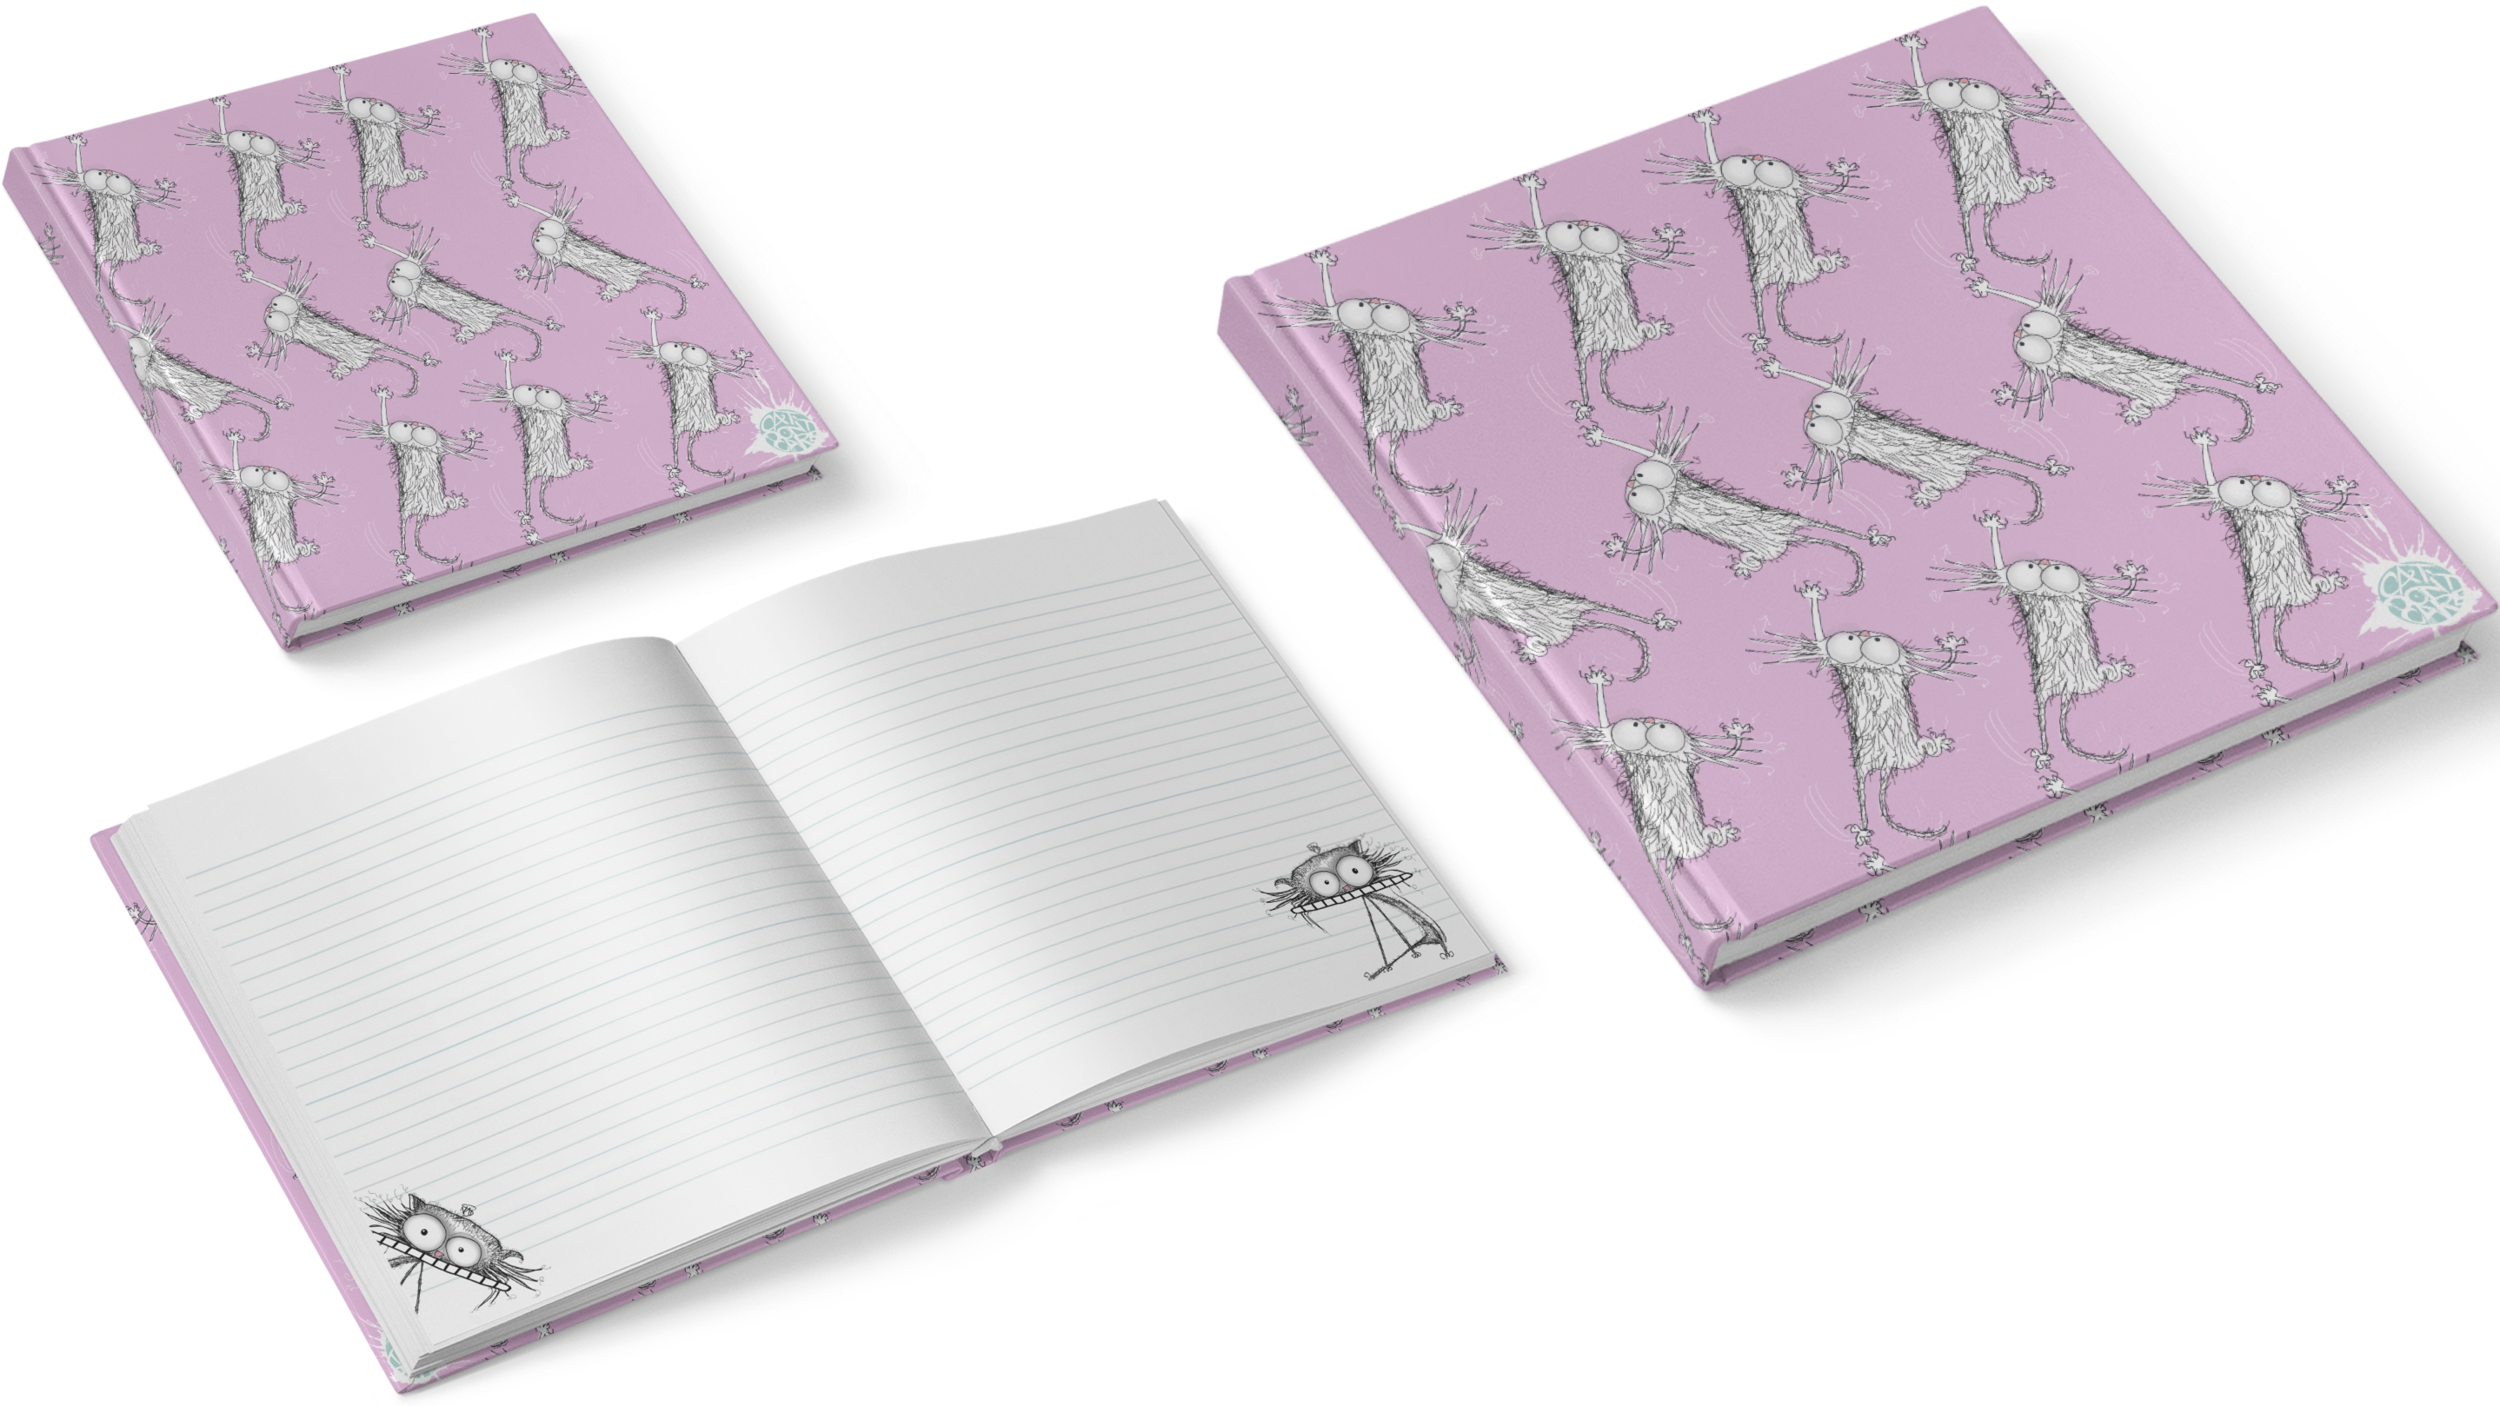 CAT DONT CARE   STATIONERY NOTEBOOKS 2   NATALIE PALMER SUTTON   ILLUSTRATION   GIFTS FOR CRAZY CAT LOVERS